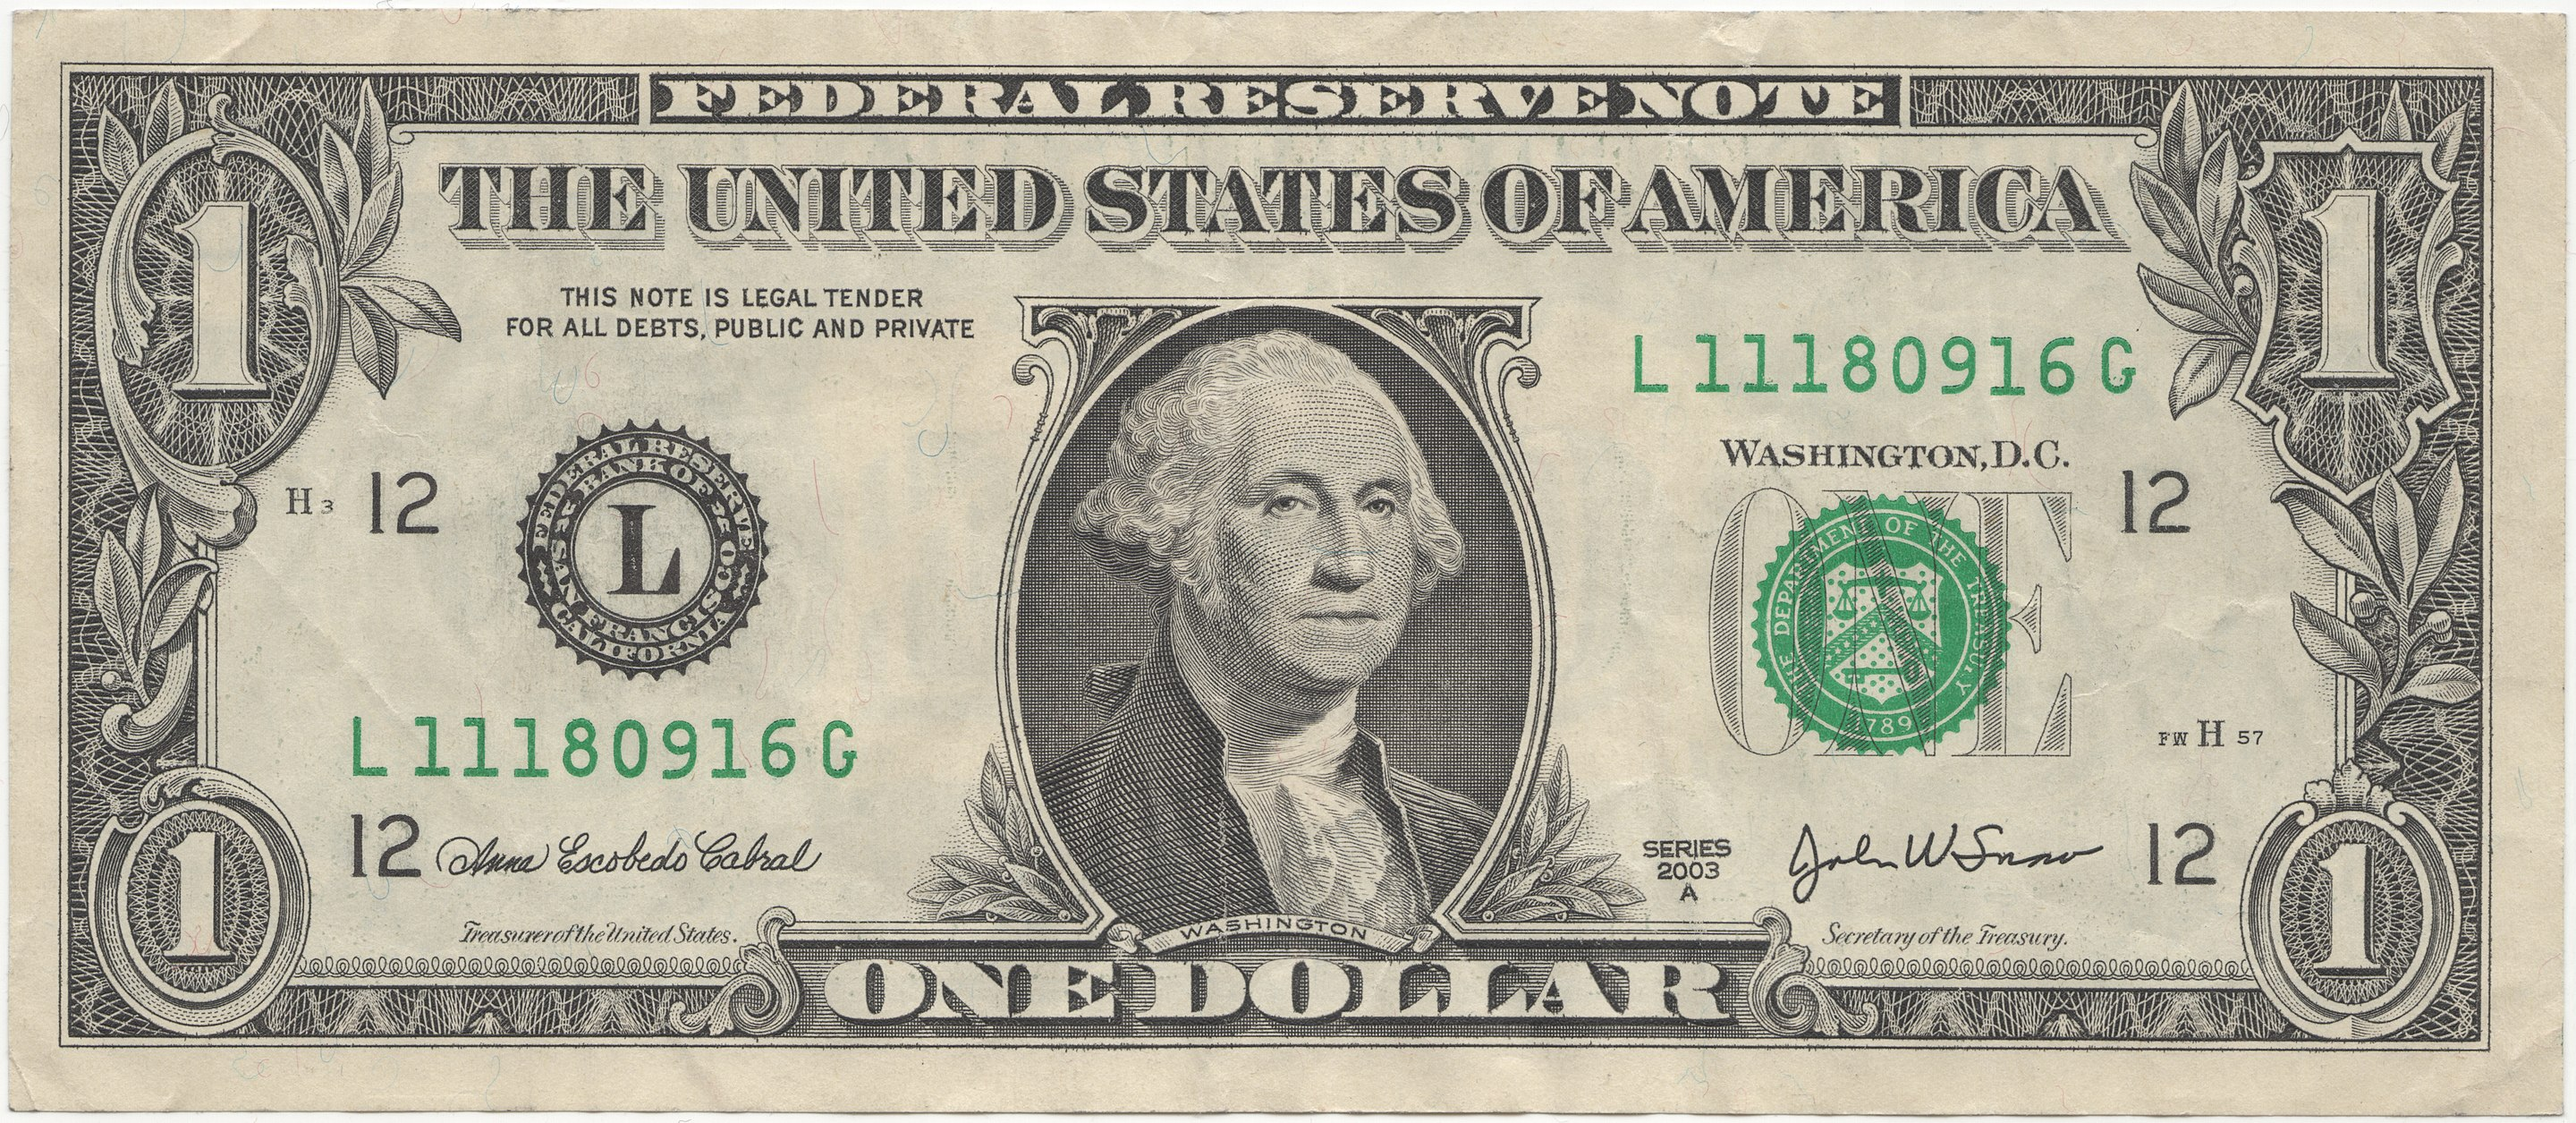 https://upload.wikimedia.org/wikipedia/commons/thumb/7/7b/United_States_one_dollar_bill%2C_obverse.jpg/2880px-United_States_one_dollar_bill%2C_obverse.jpg